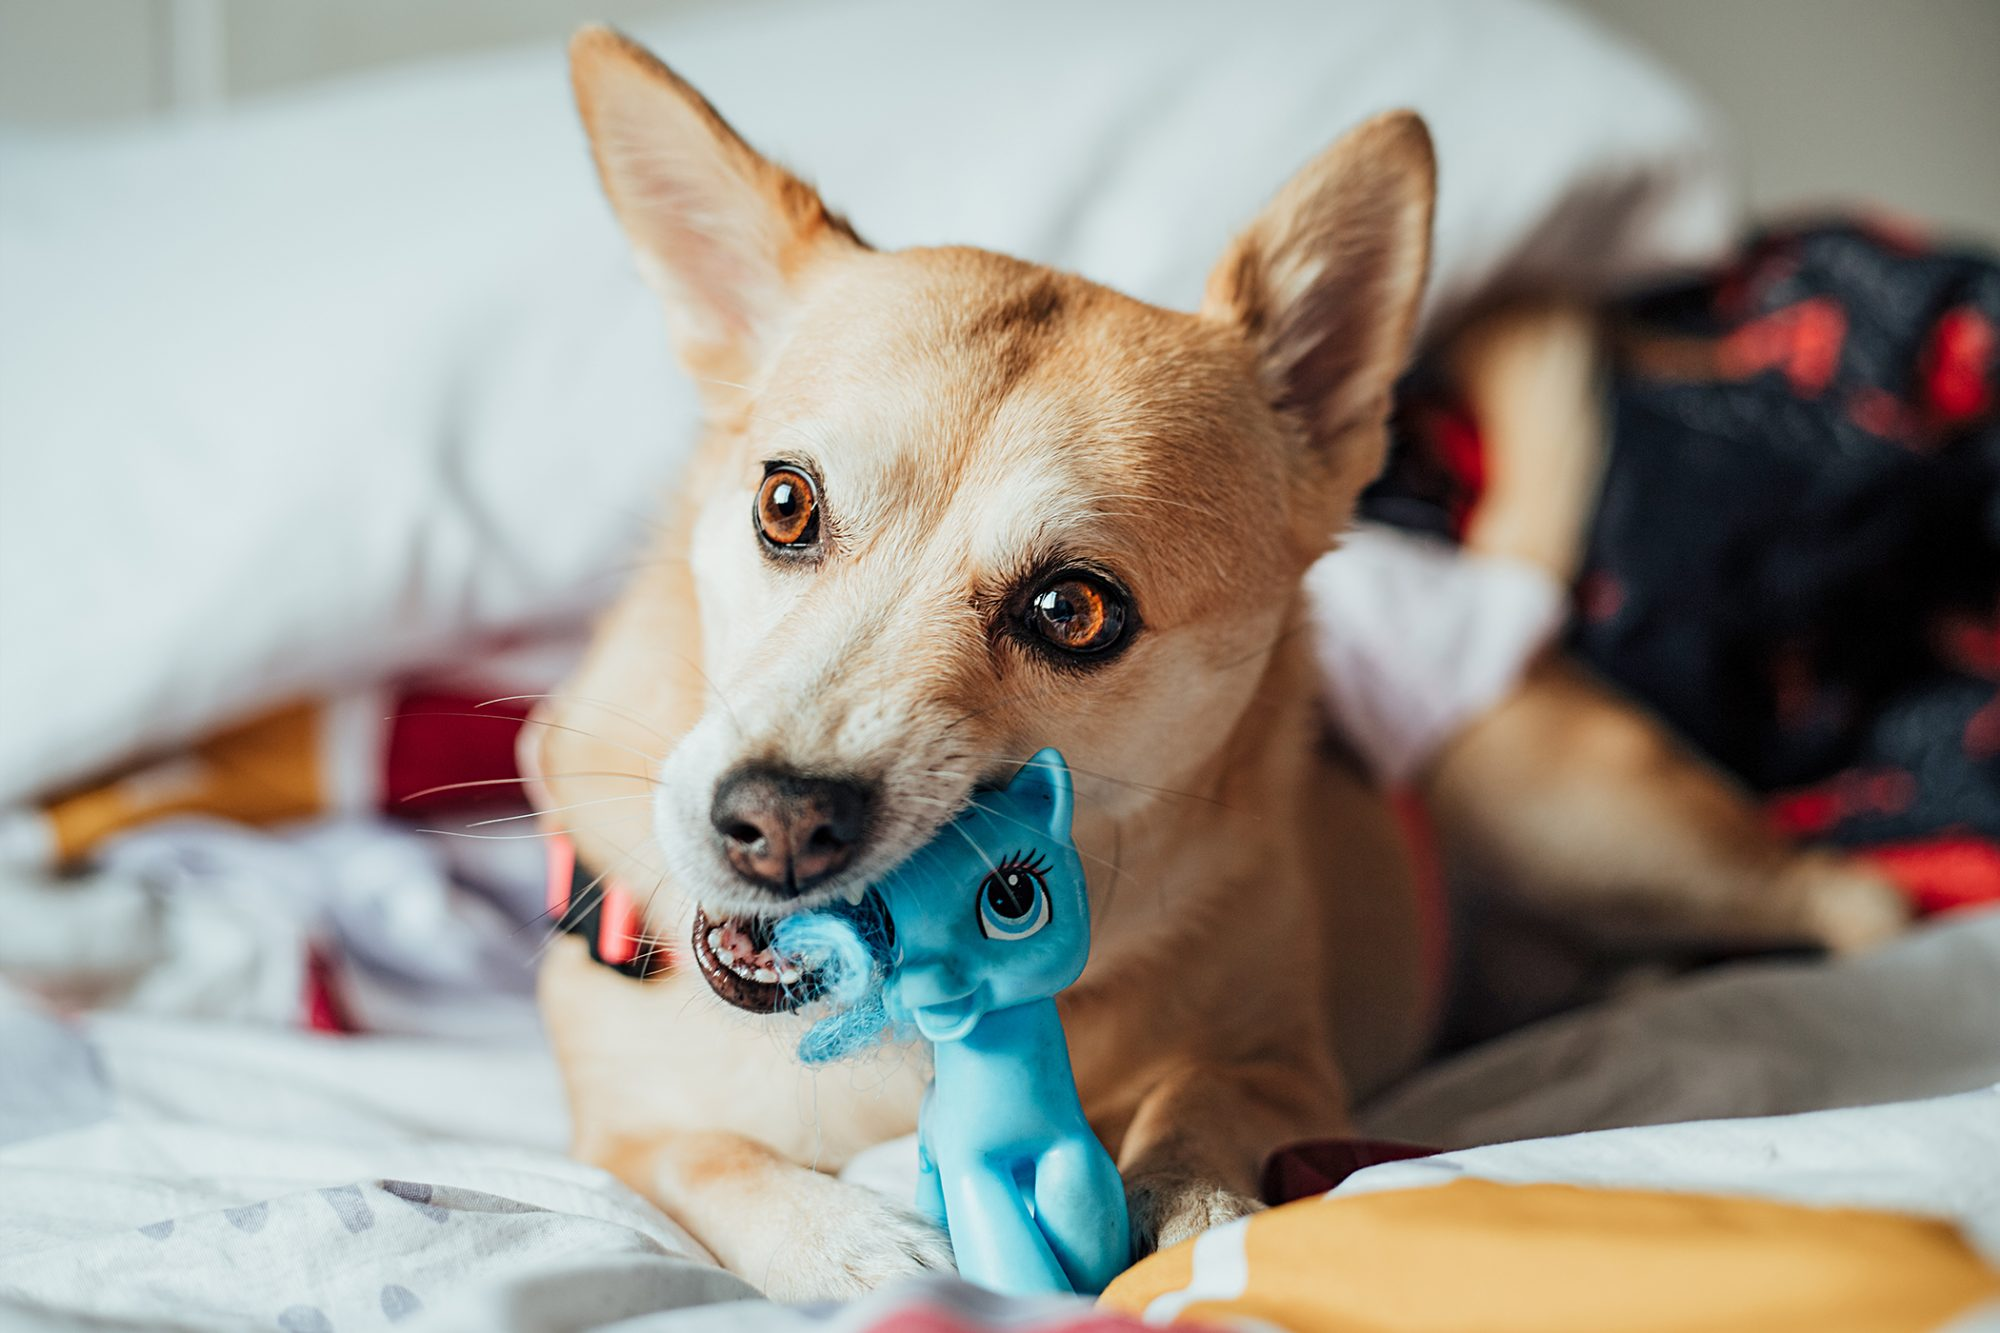 carolina dog lying in bed chewing blue toy